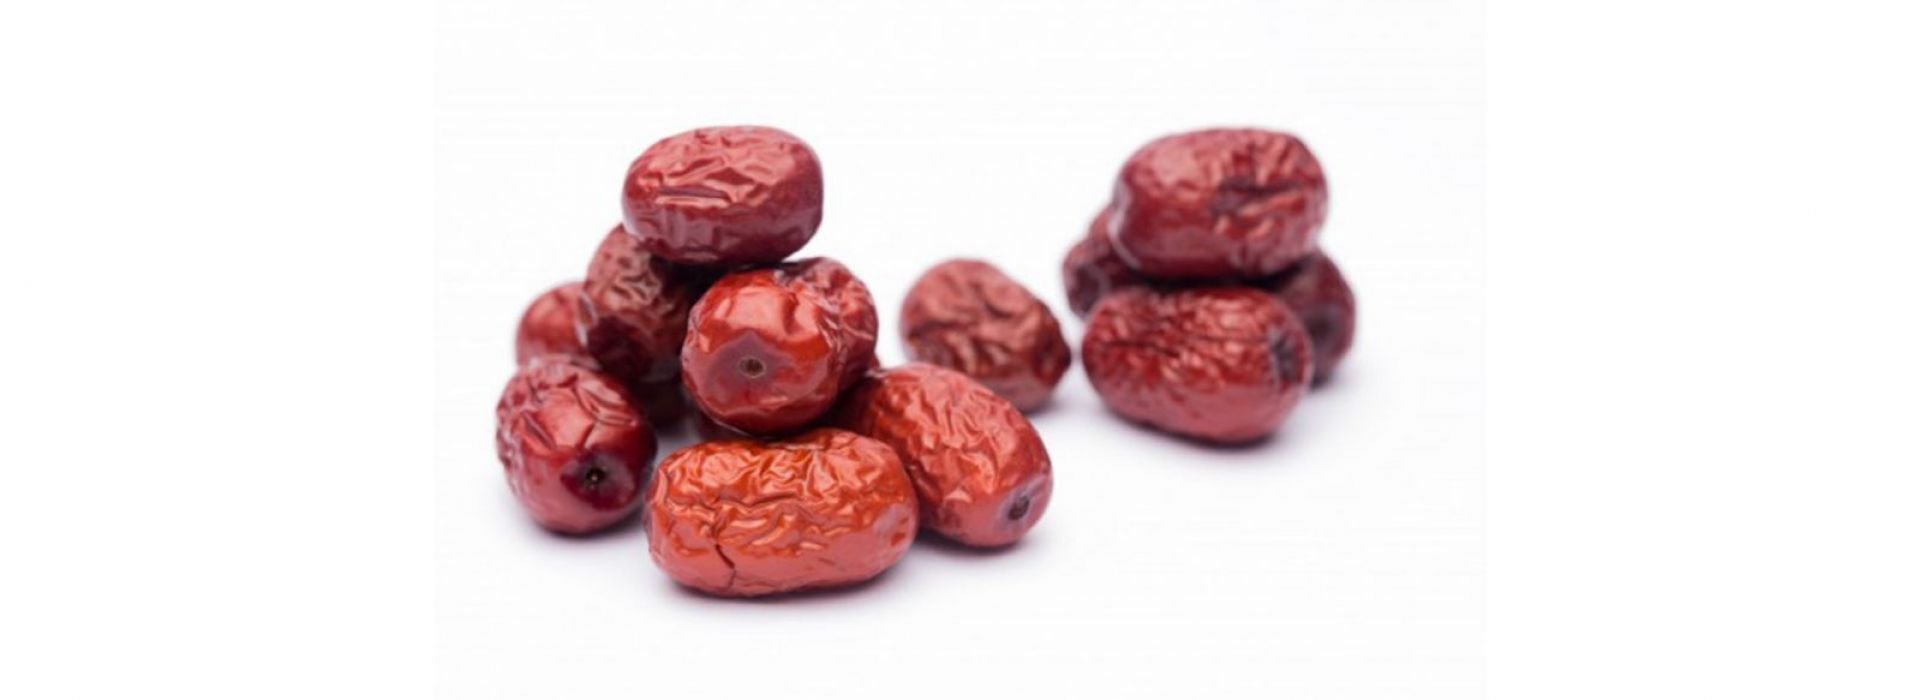 Red and Yellow Dates